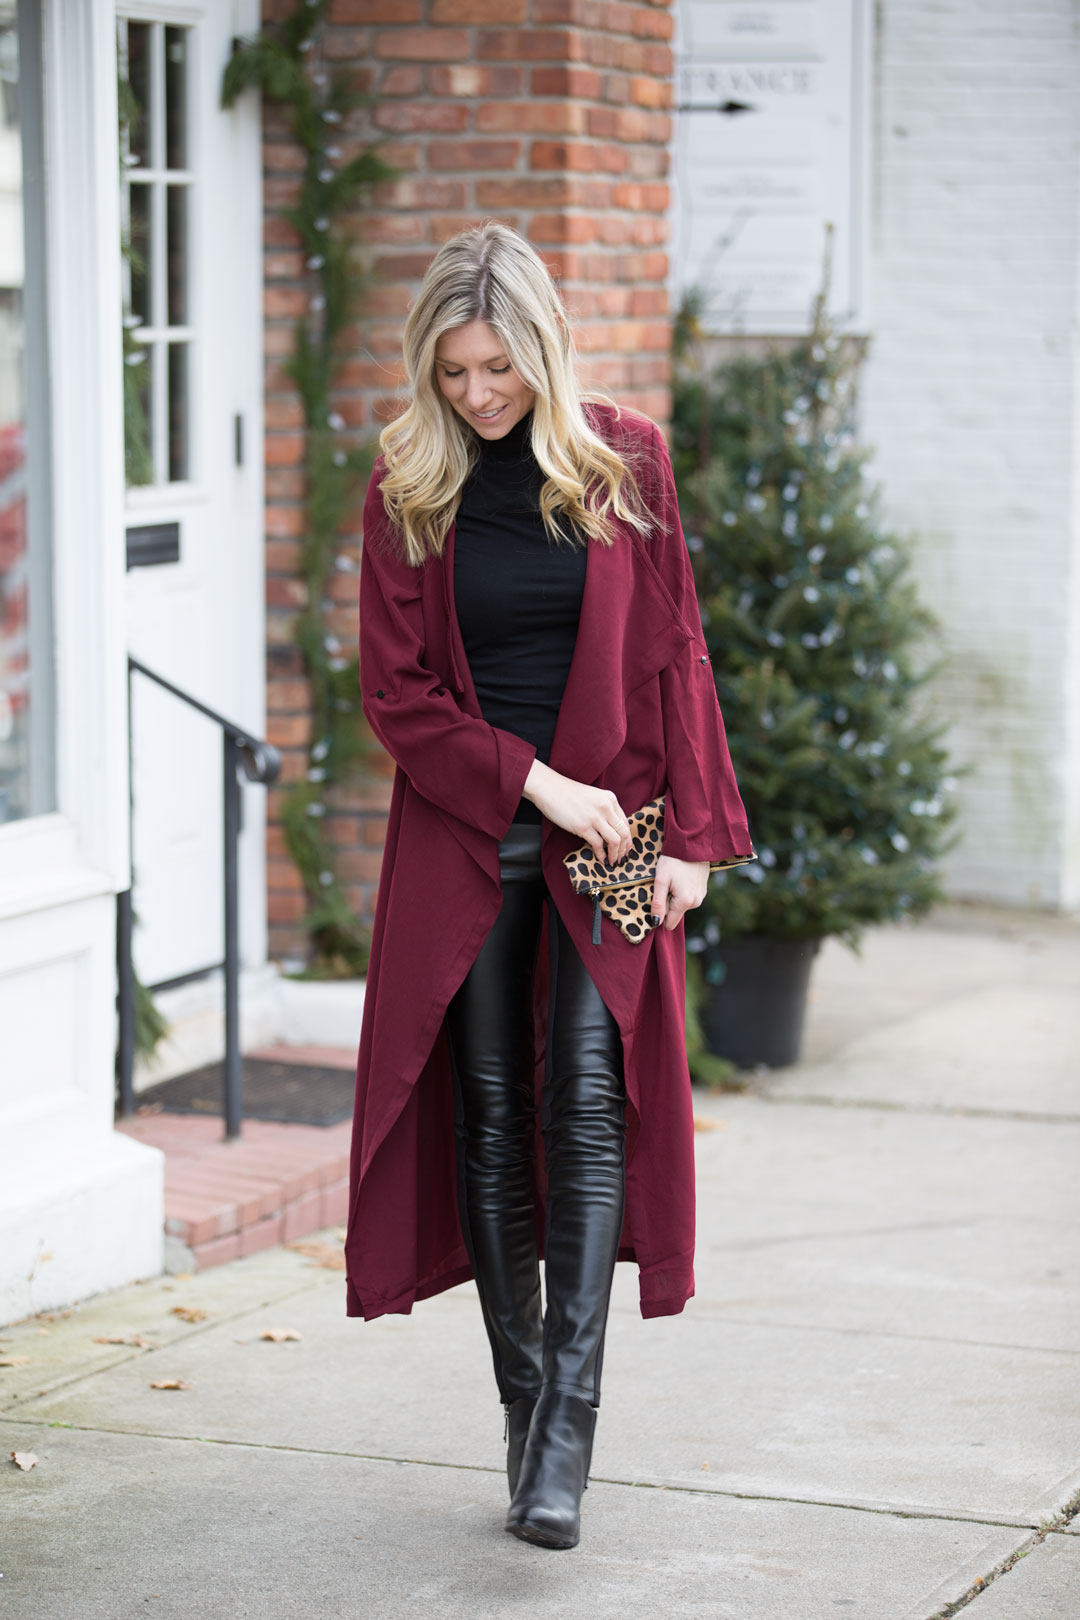 shein outerwear under $25